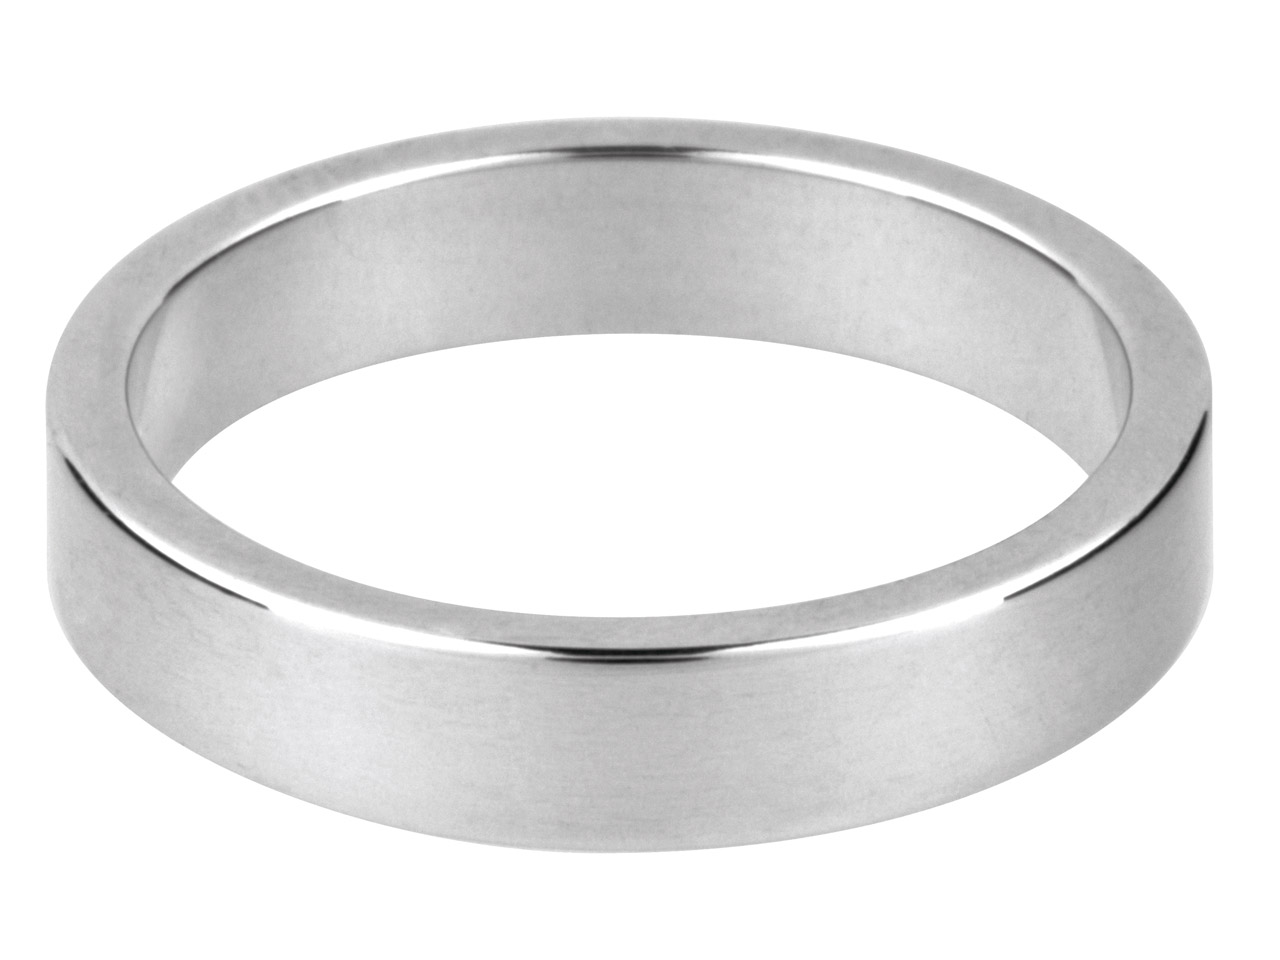 9ct White Flat Wedding Ring 5.0mm K 5.7gms Heavy Weight Hallmarked Wall Thickness 1.62mm